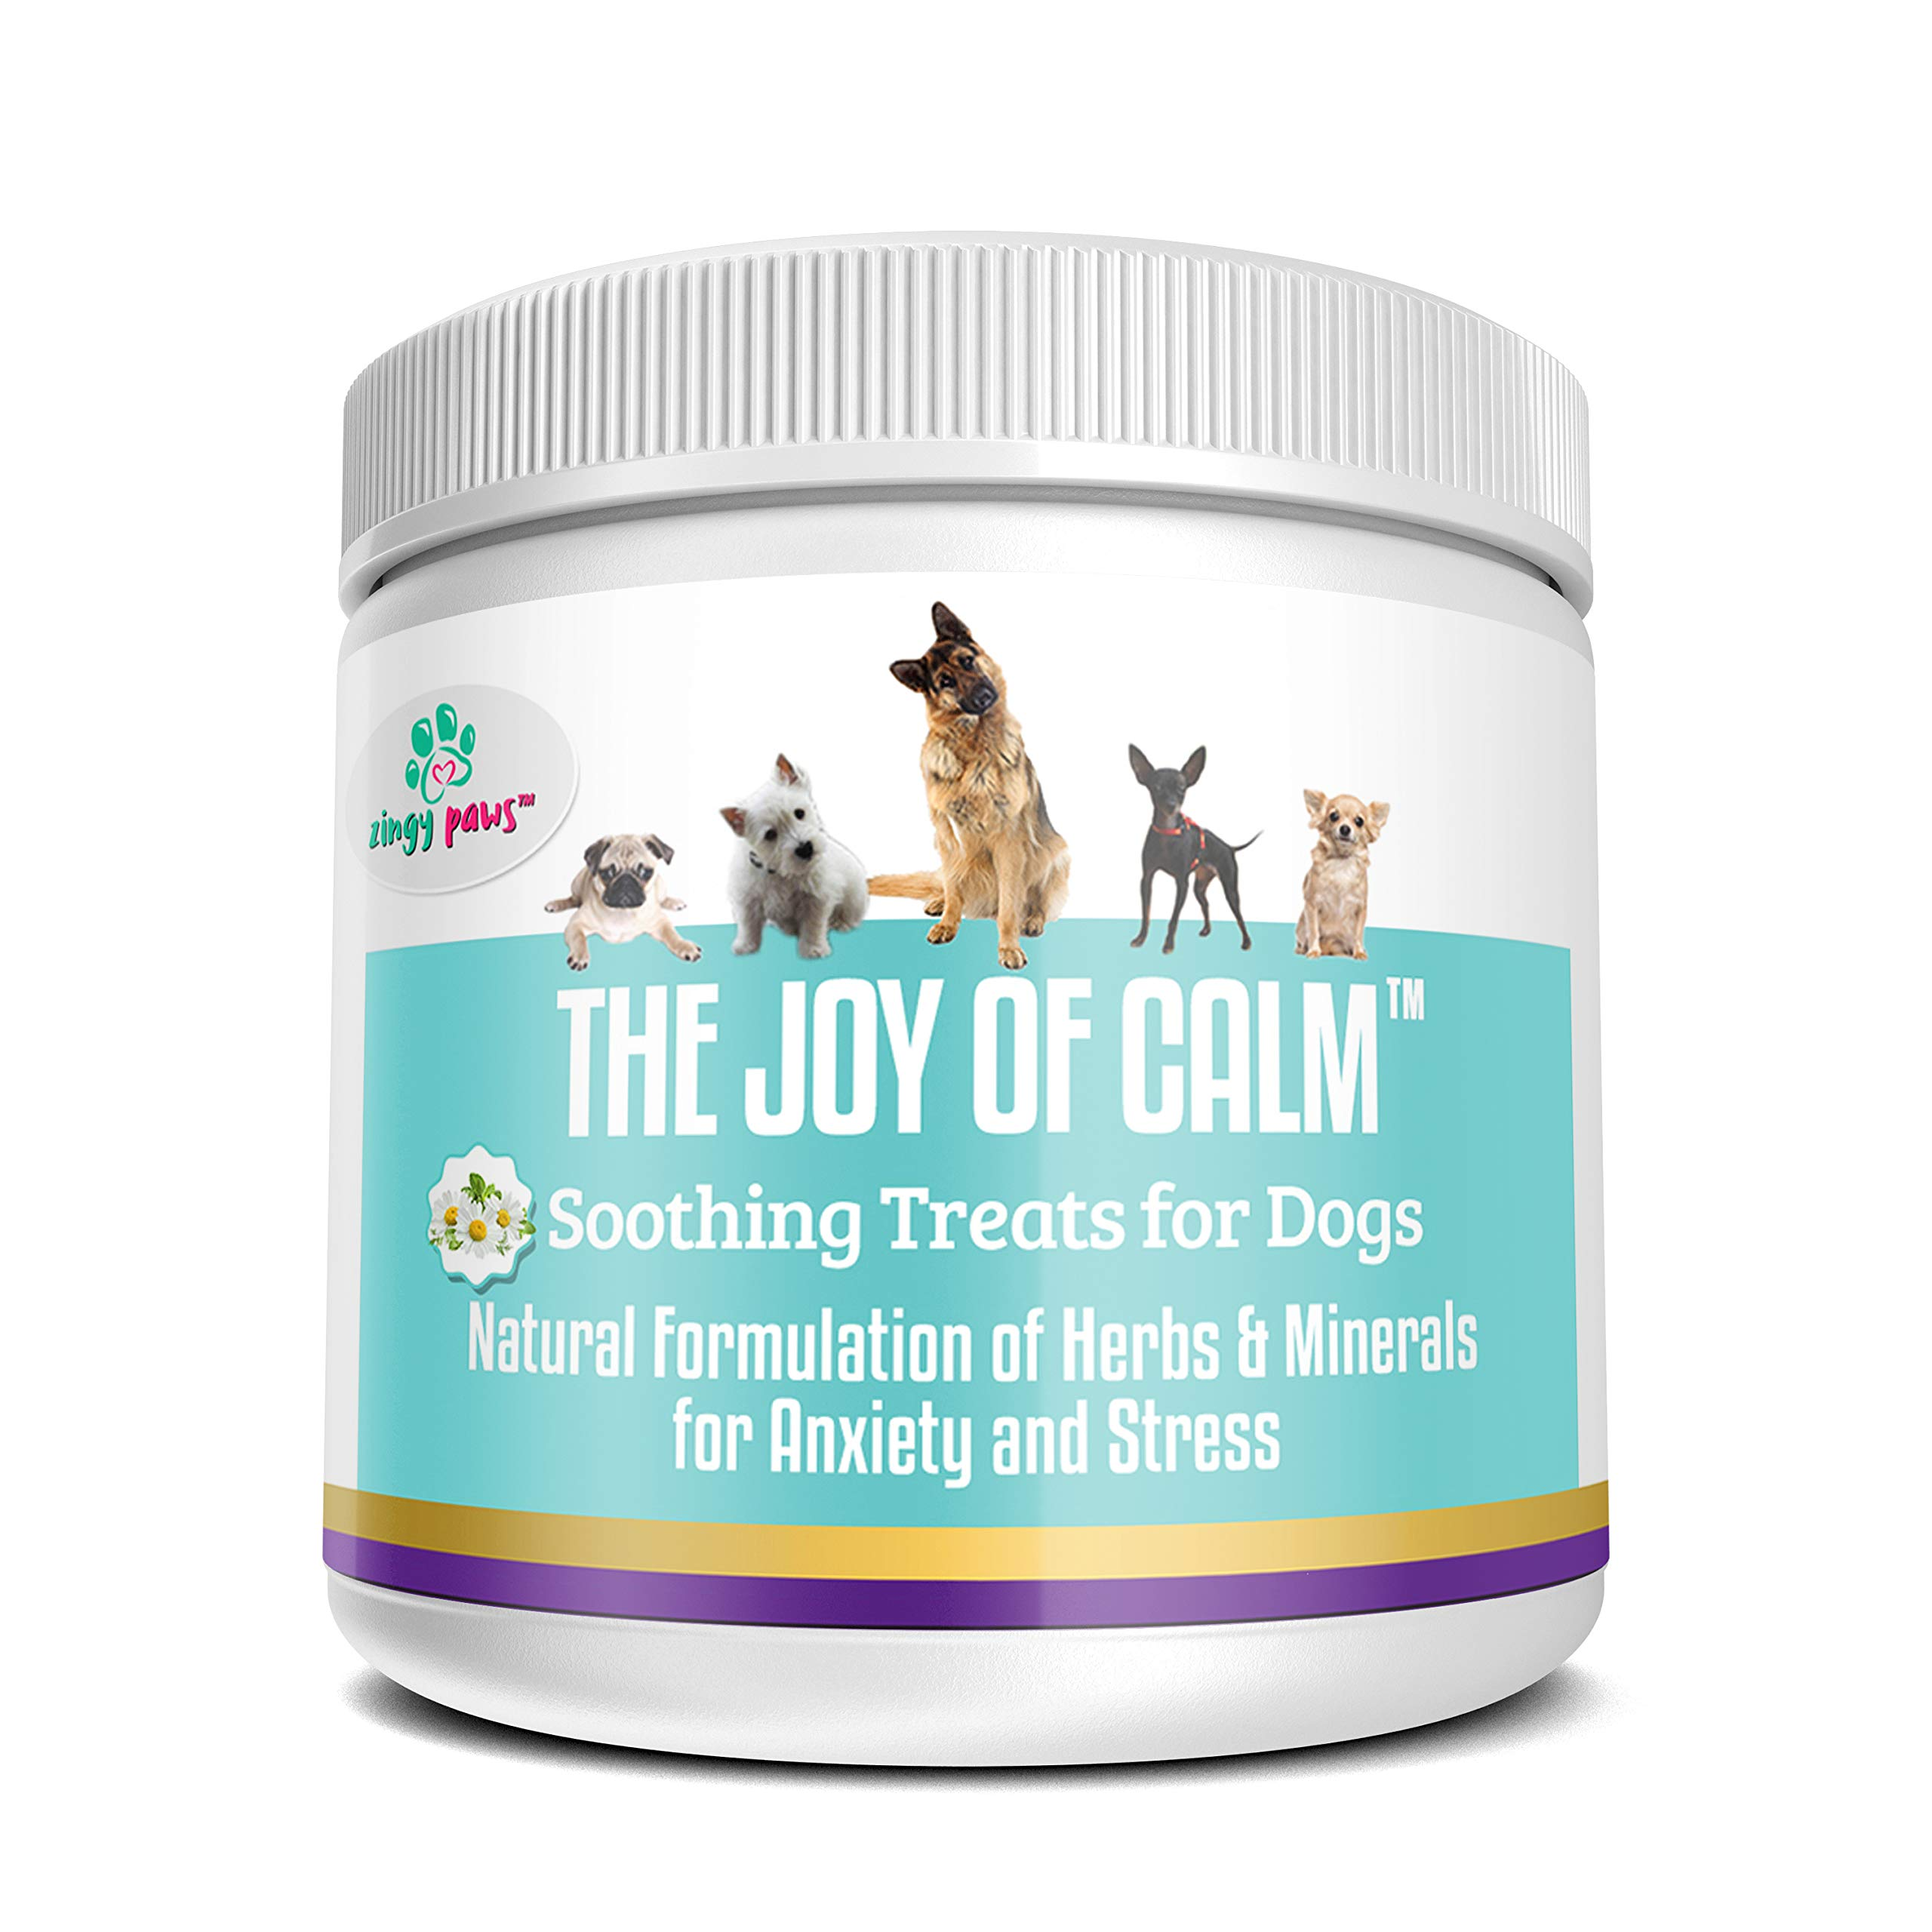 Calming Treats for Dogs - Dog Anxiety Relief with Magnesium, Thiamine, Chamomile, Passionflower and Hemp Seed - Natural Dog Calming Aid 75x Bacon Flavored Pet Treats by Zingy Paws